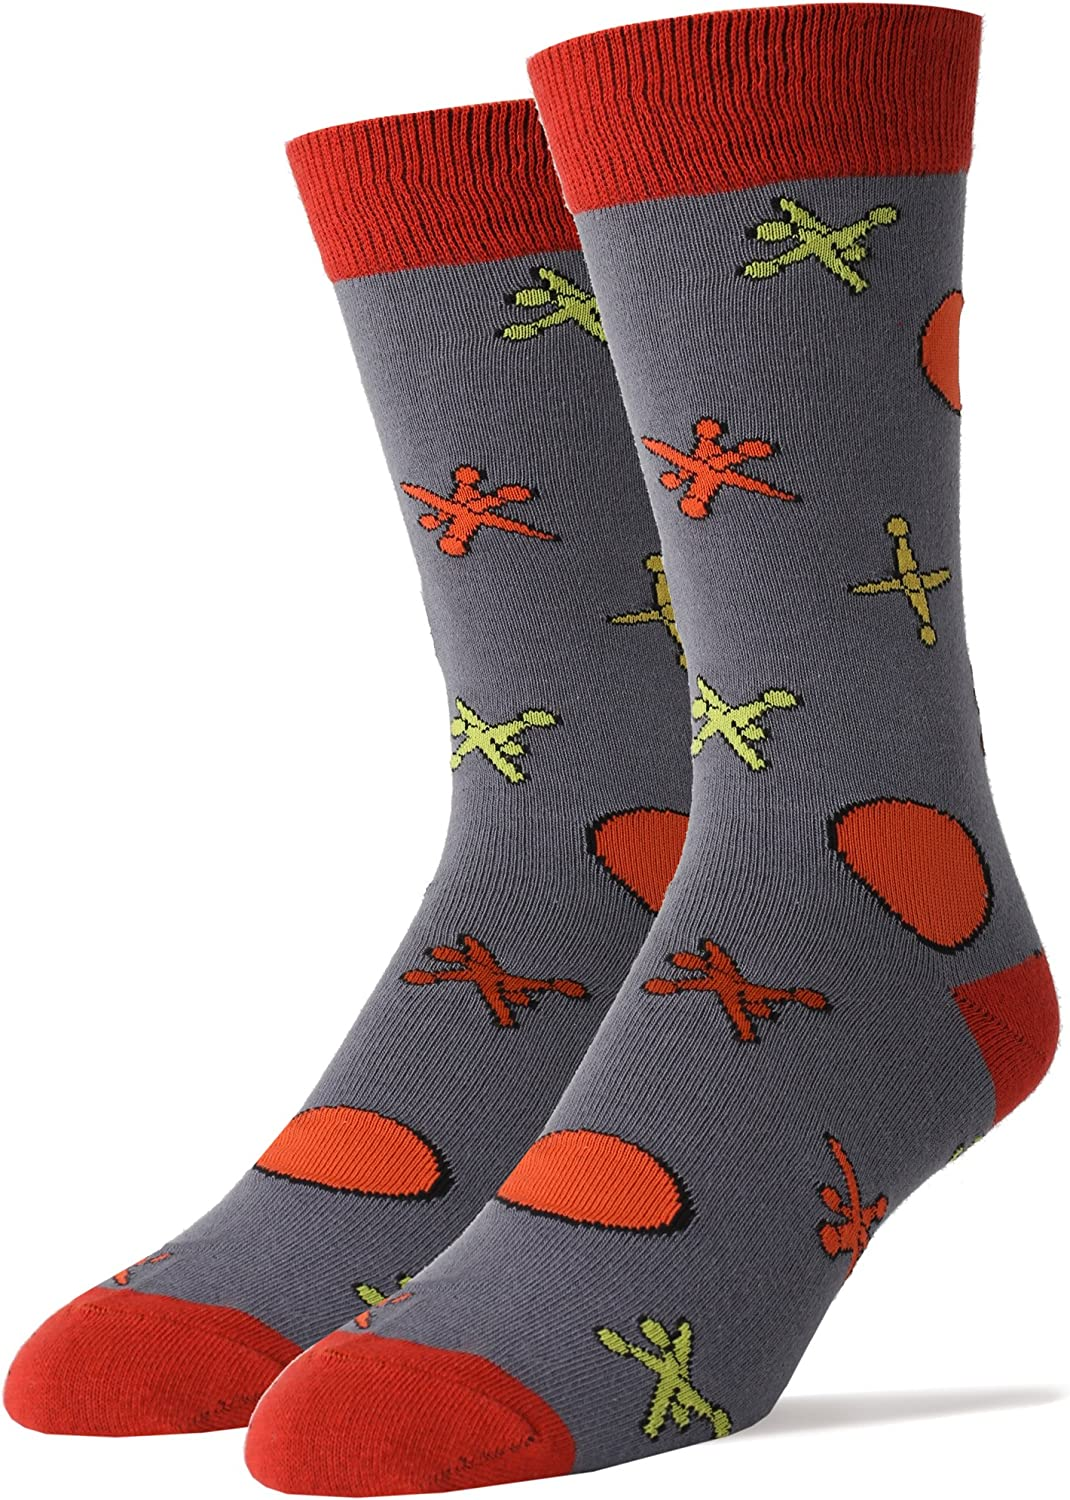 Men's Novelty Crew Socks for Throwbacks Oooh Fun OFFicial Funny Yeah free Soc